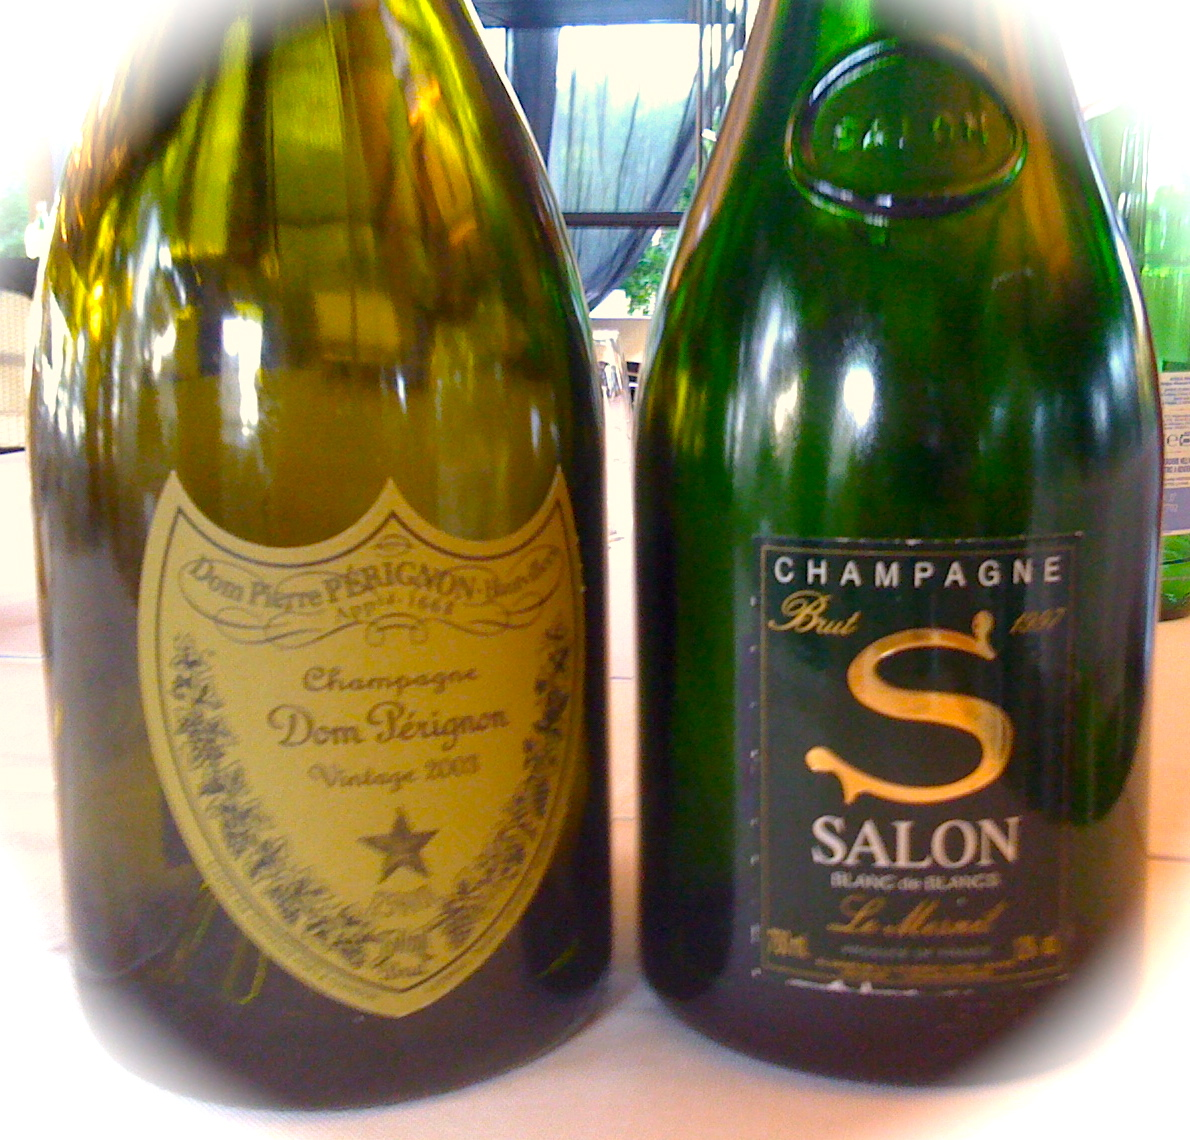 Champagne dom perignon 2003 e salon 1997 foodwineadvisor for 1997 champagne salon